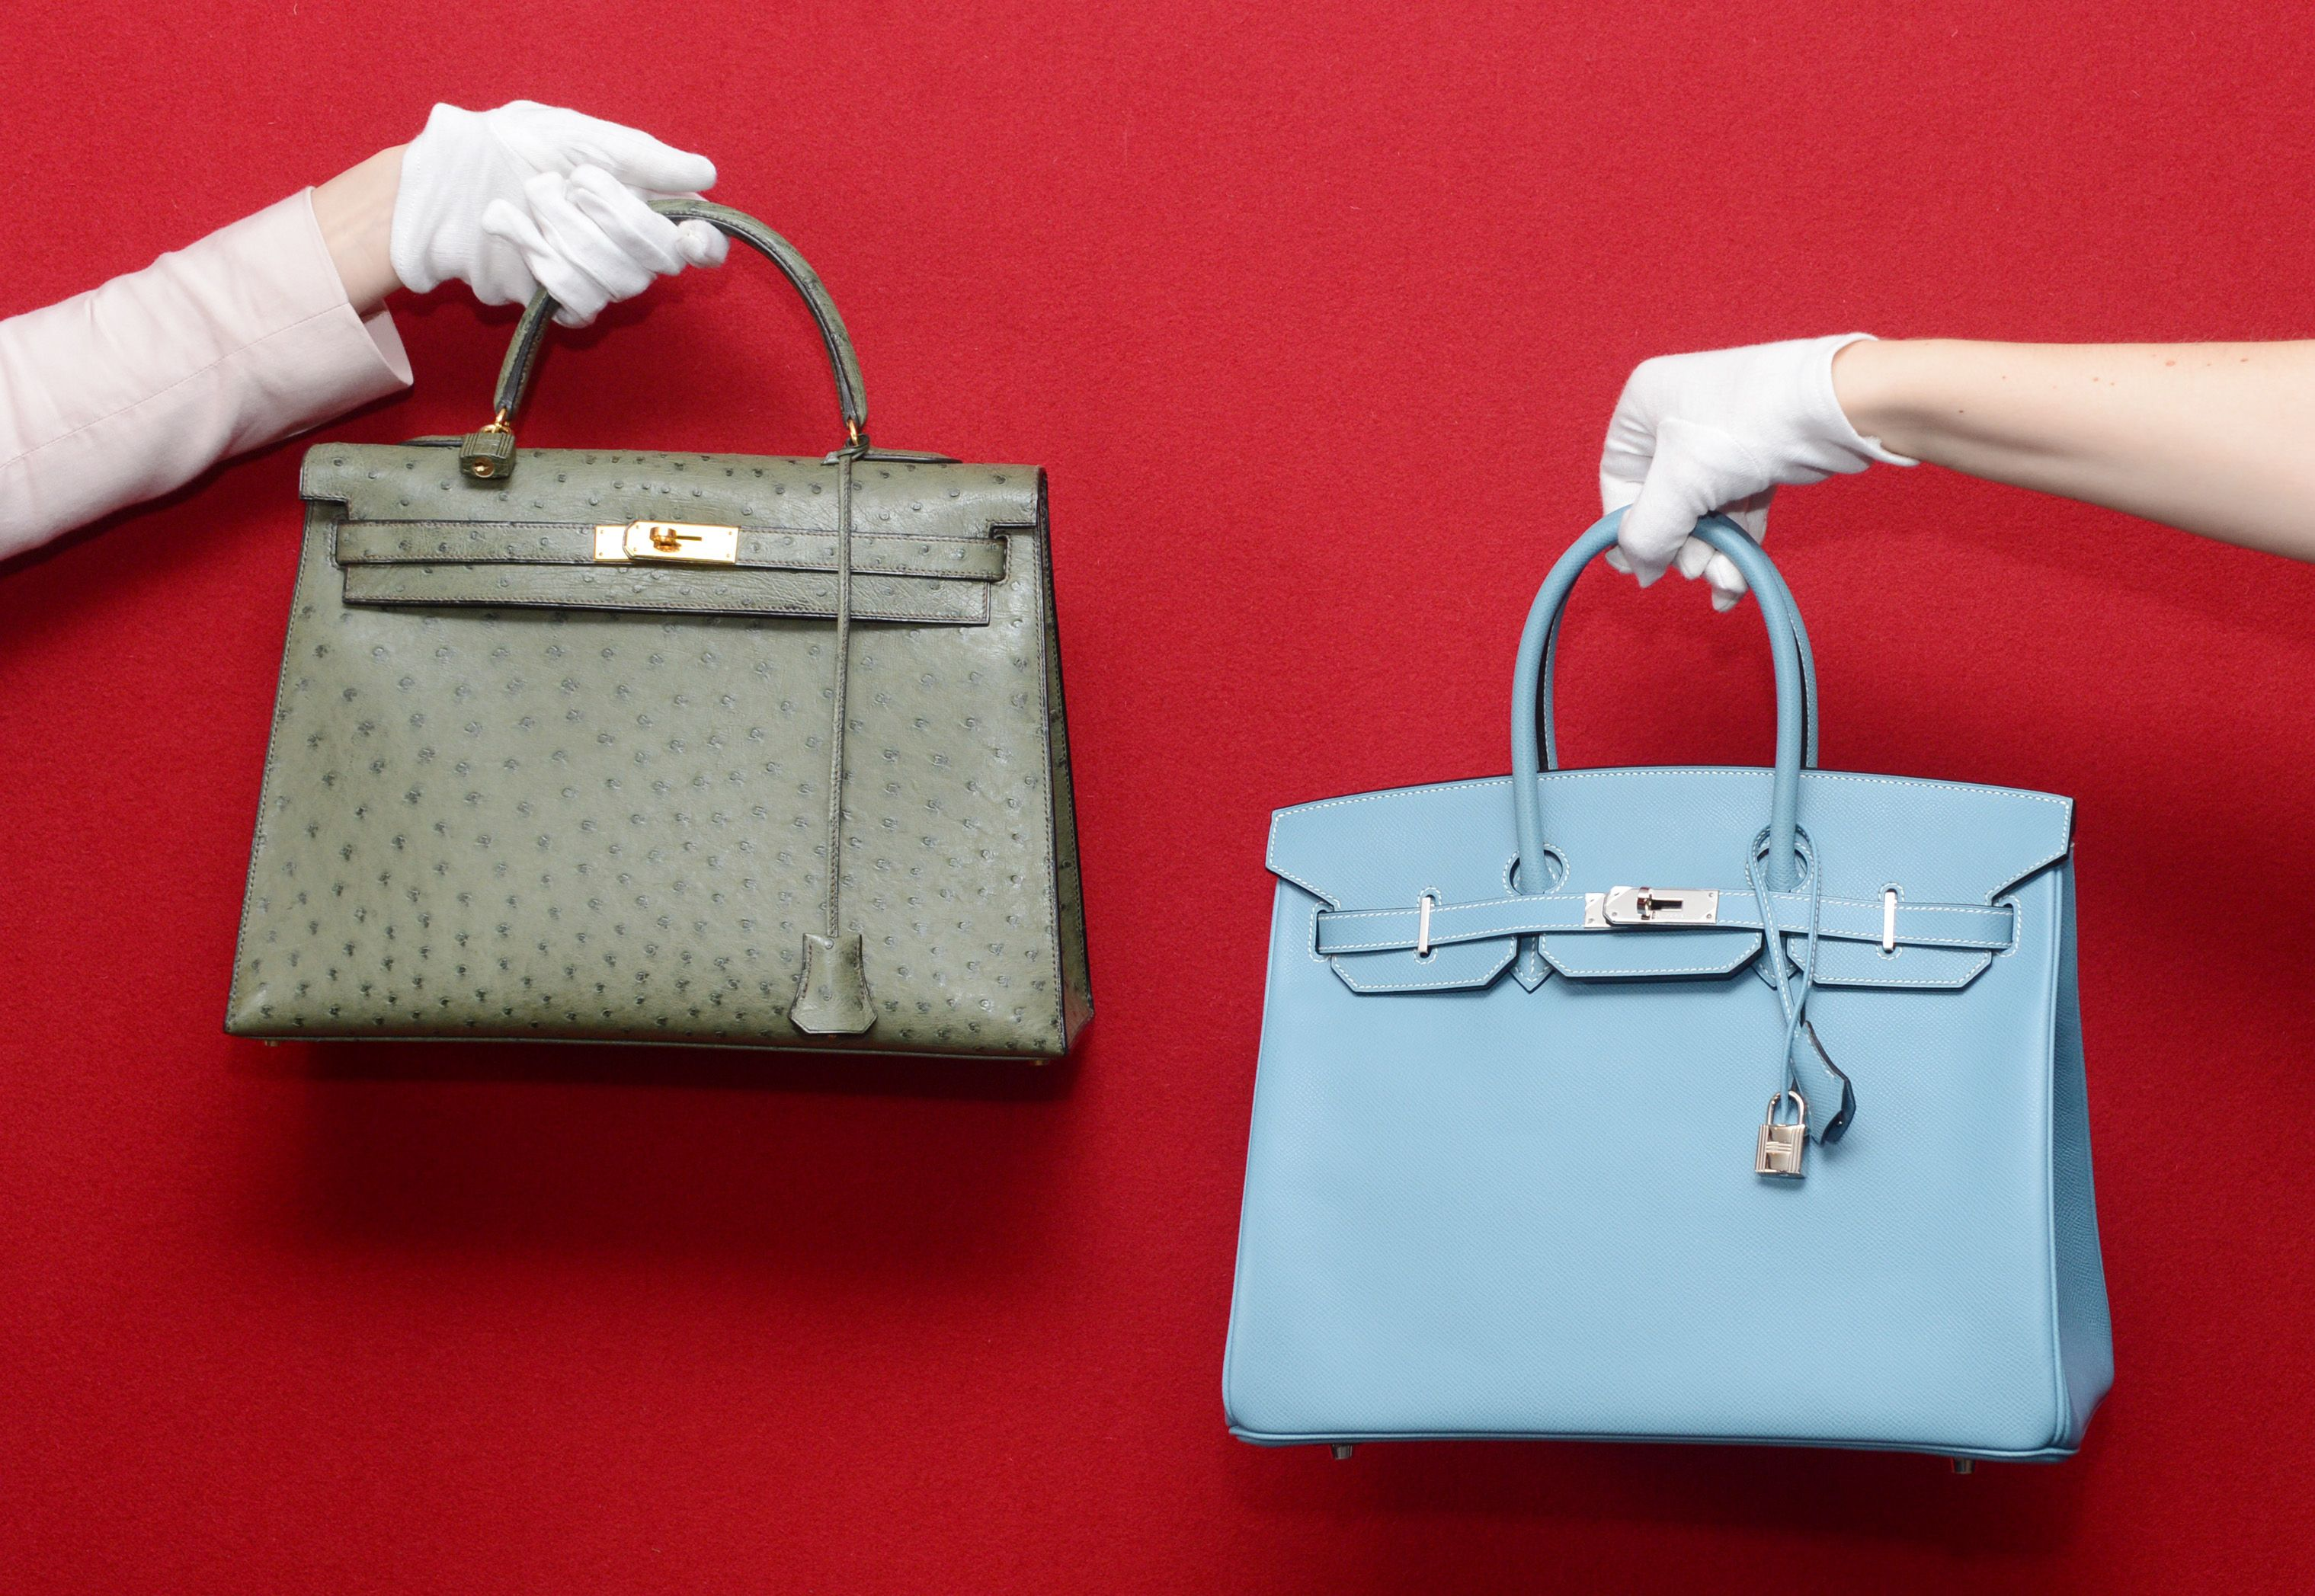 712c6cb6bb 11 Things You Didn't Know About Hermes Birkins - Hermes Birkin ...